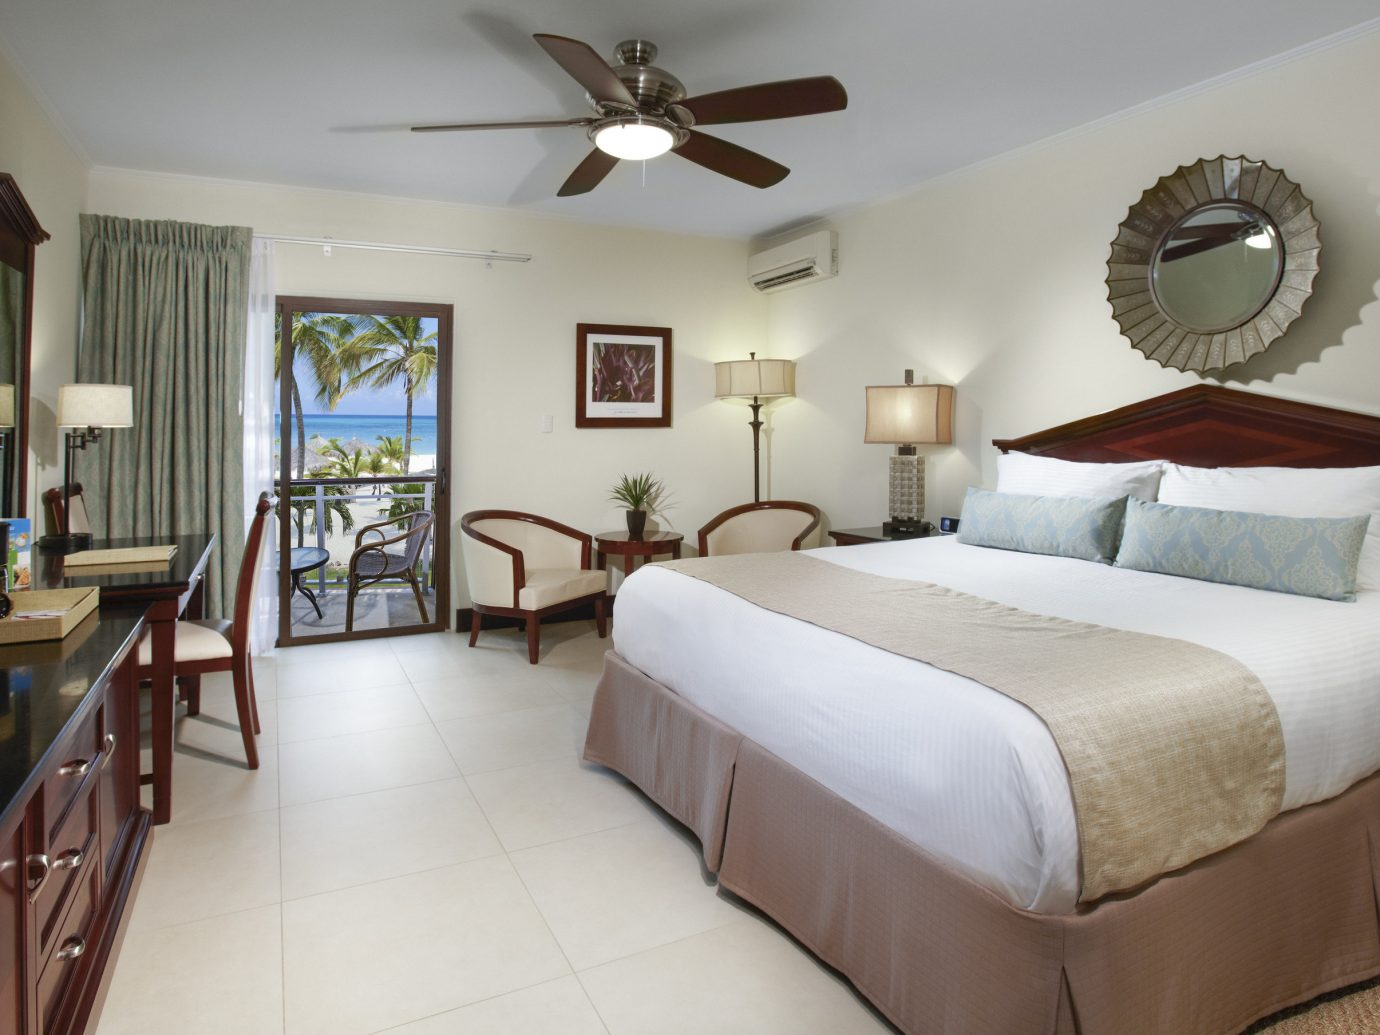 Aruba caribbean Hotels indoor floor wall bed room property Bedroom ceiling hotel estate cottage home real estate Suite interior design Villa living room condominium apartment furniture